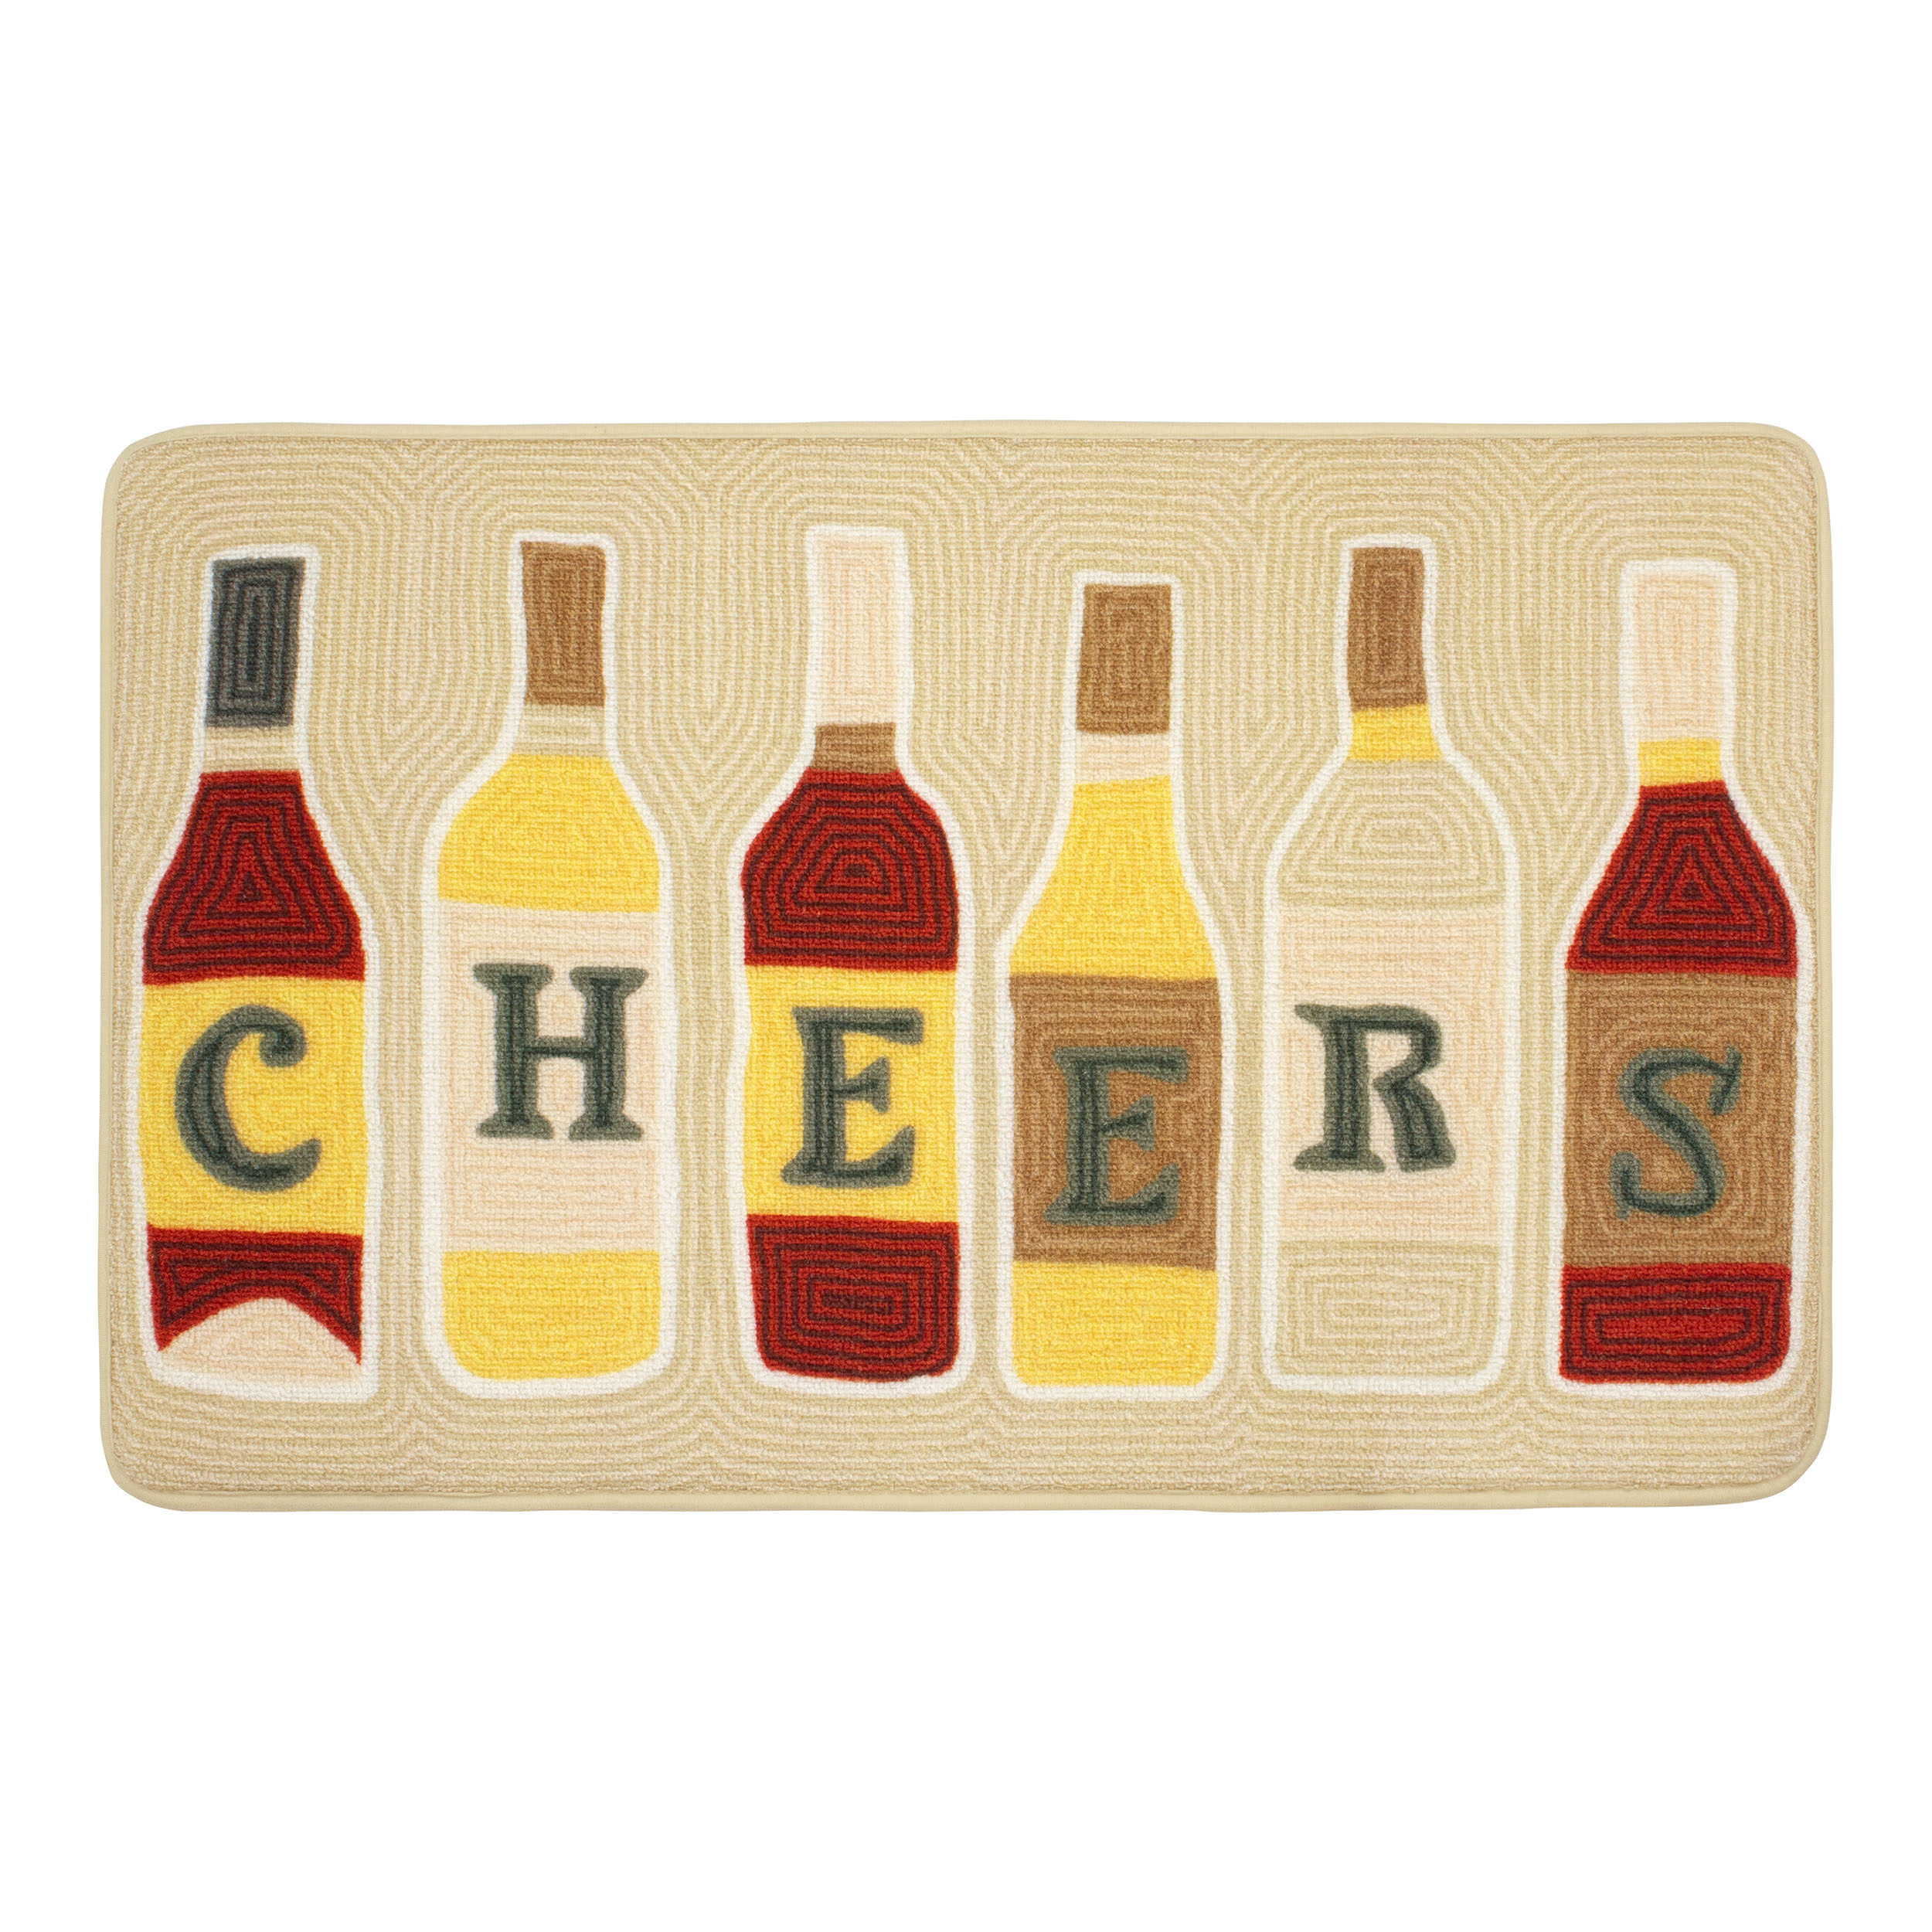 Chef Gear HD Printed 20 x 32 in. Cheers Kitchen Rug, Beige